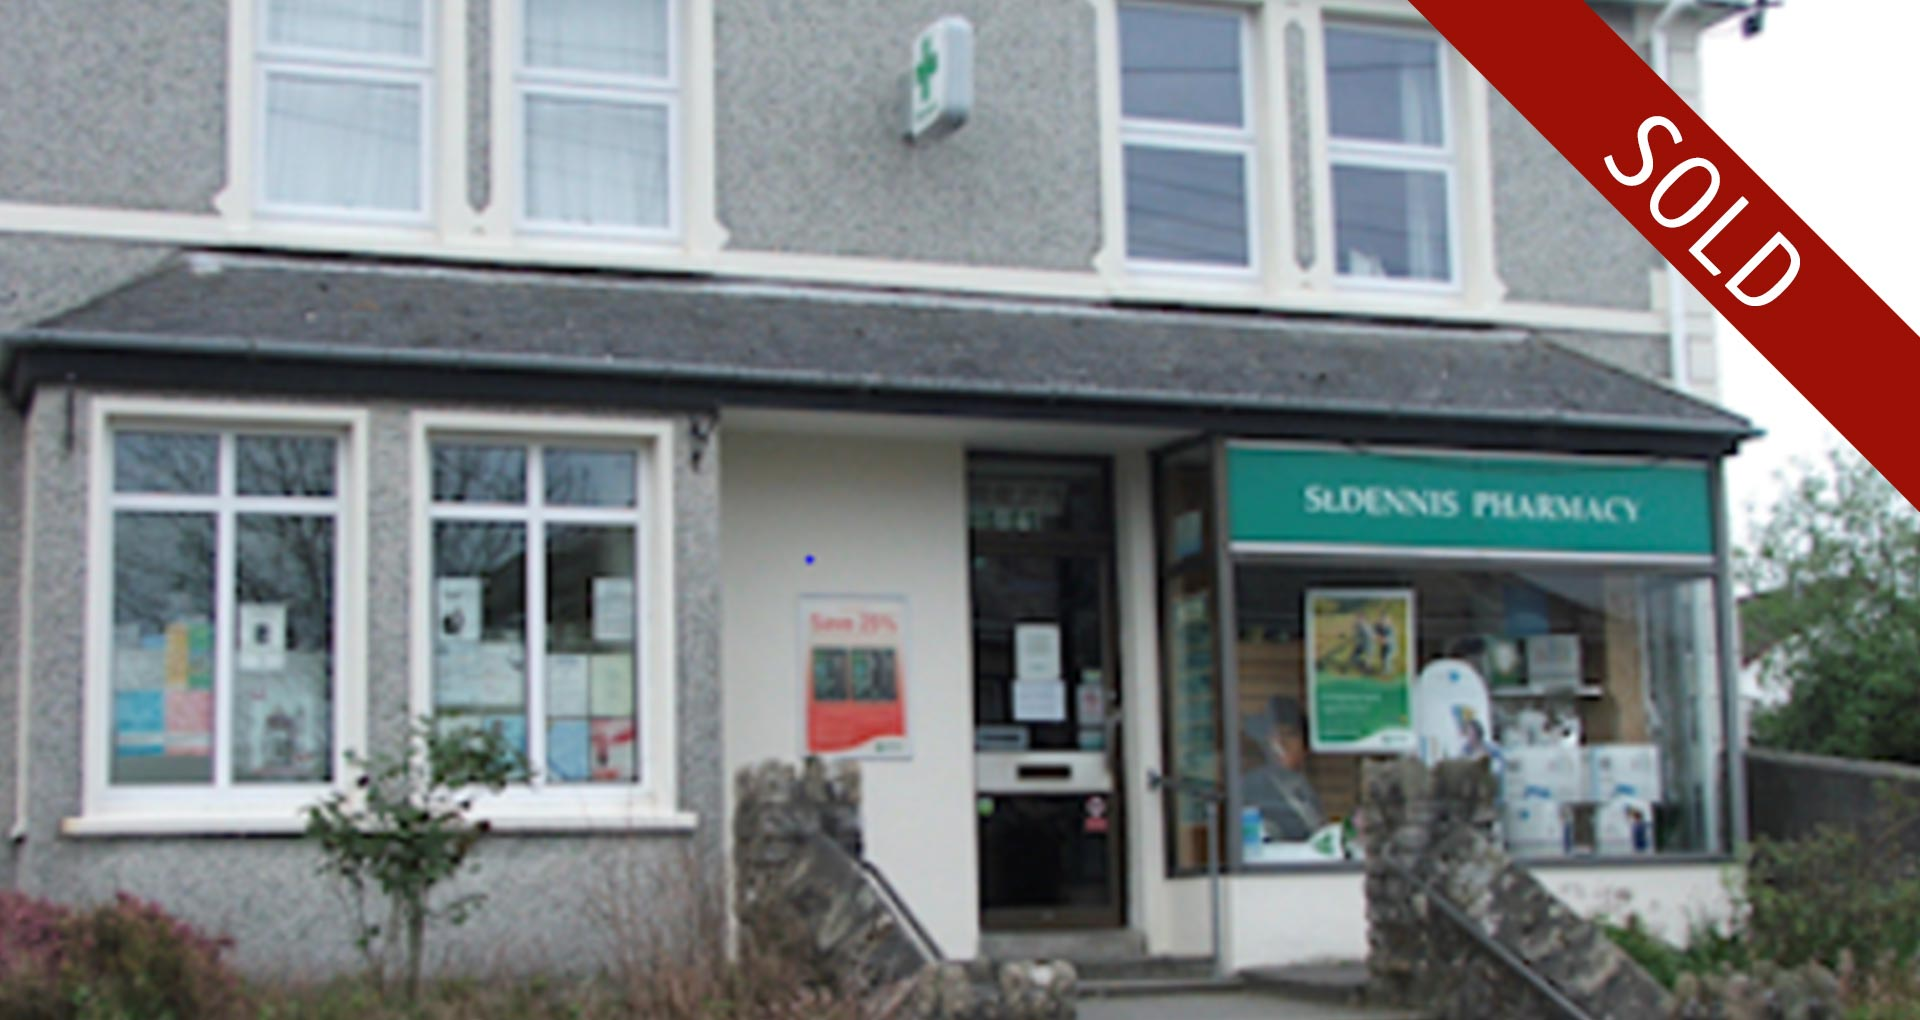 Cornwall pharmacy completion